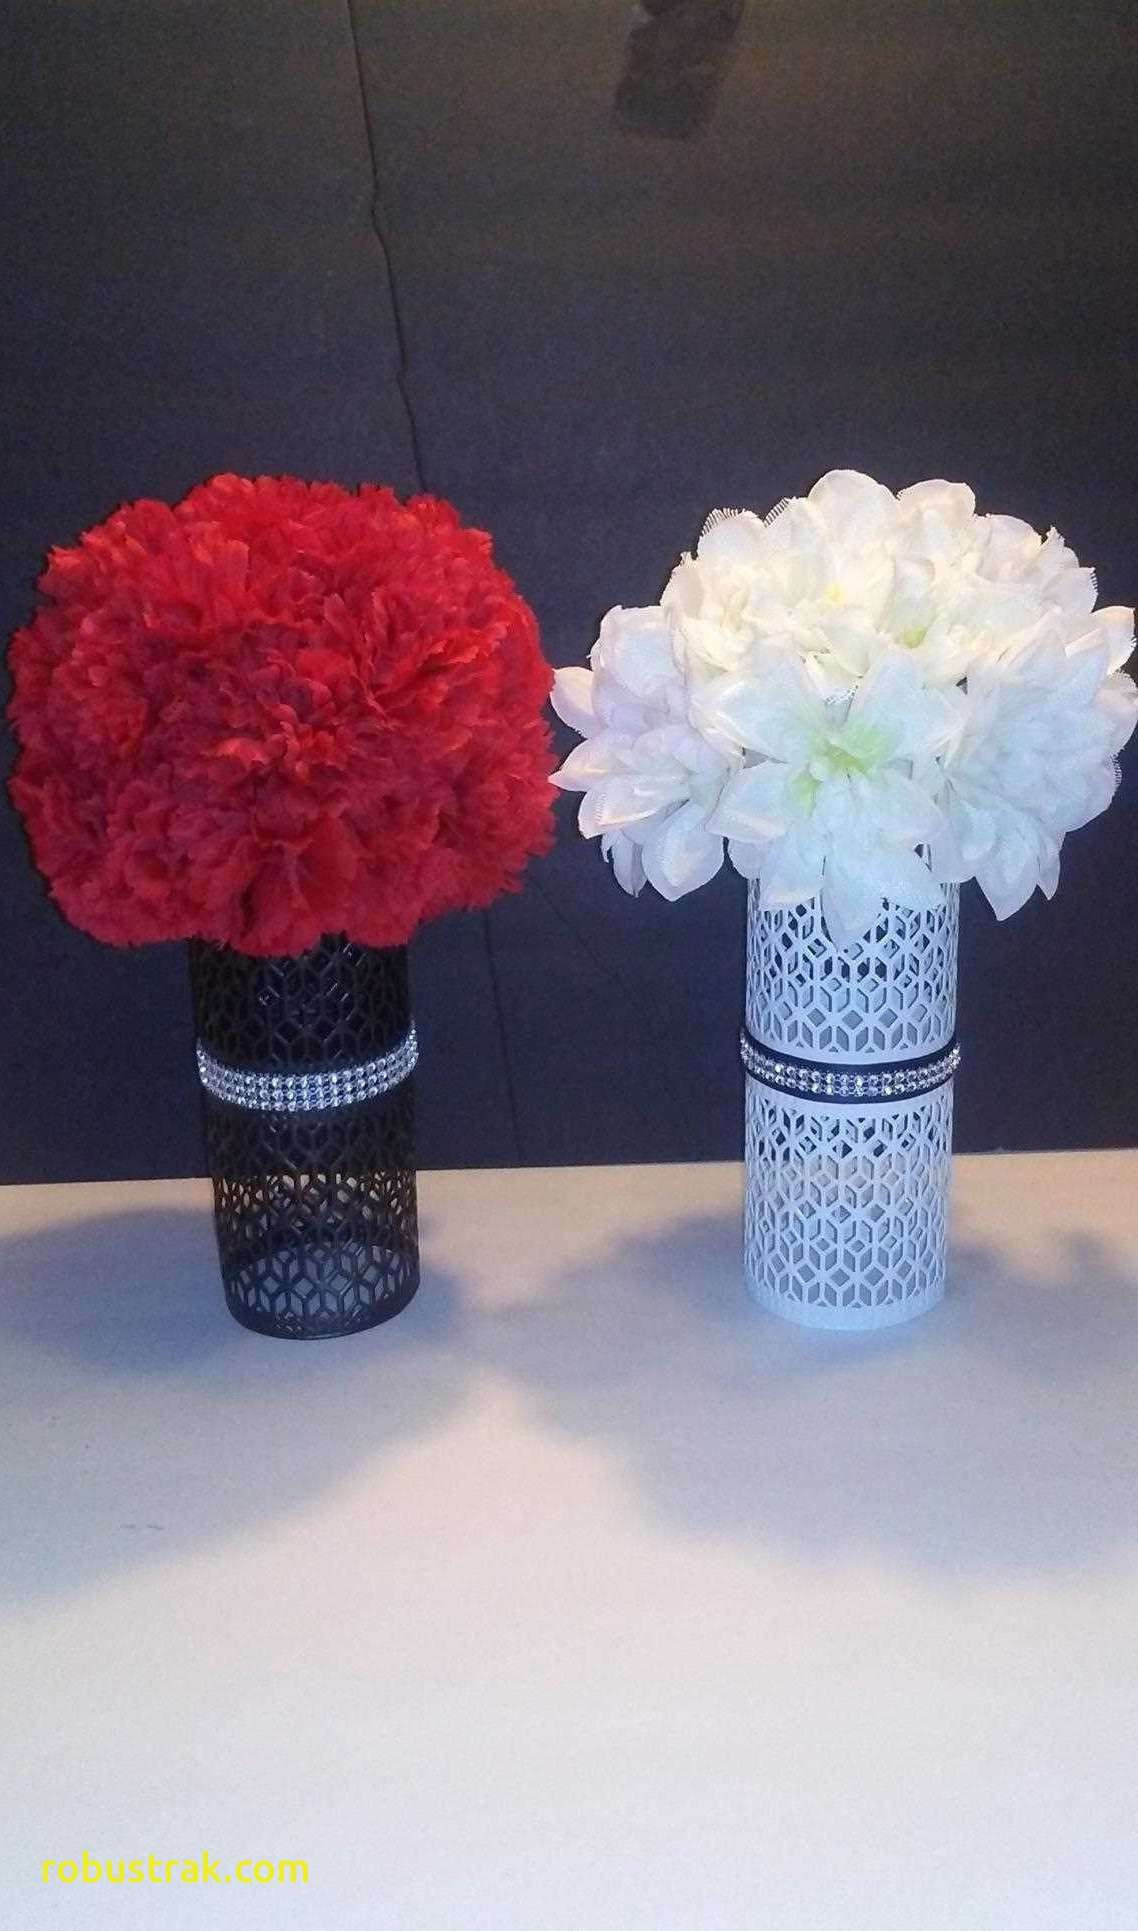 Tall Silver Vases for Wedding Centerpieces Of Wedding Table Decorations Fresh Wedding Sign In Table Decorations Throughout Wedding Table Decorations Best Of Dollar Tree Wedding Table Decorations Fresh Dollar Tree Wedding Of Wedding